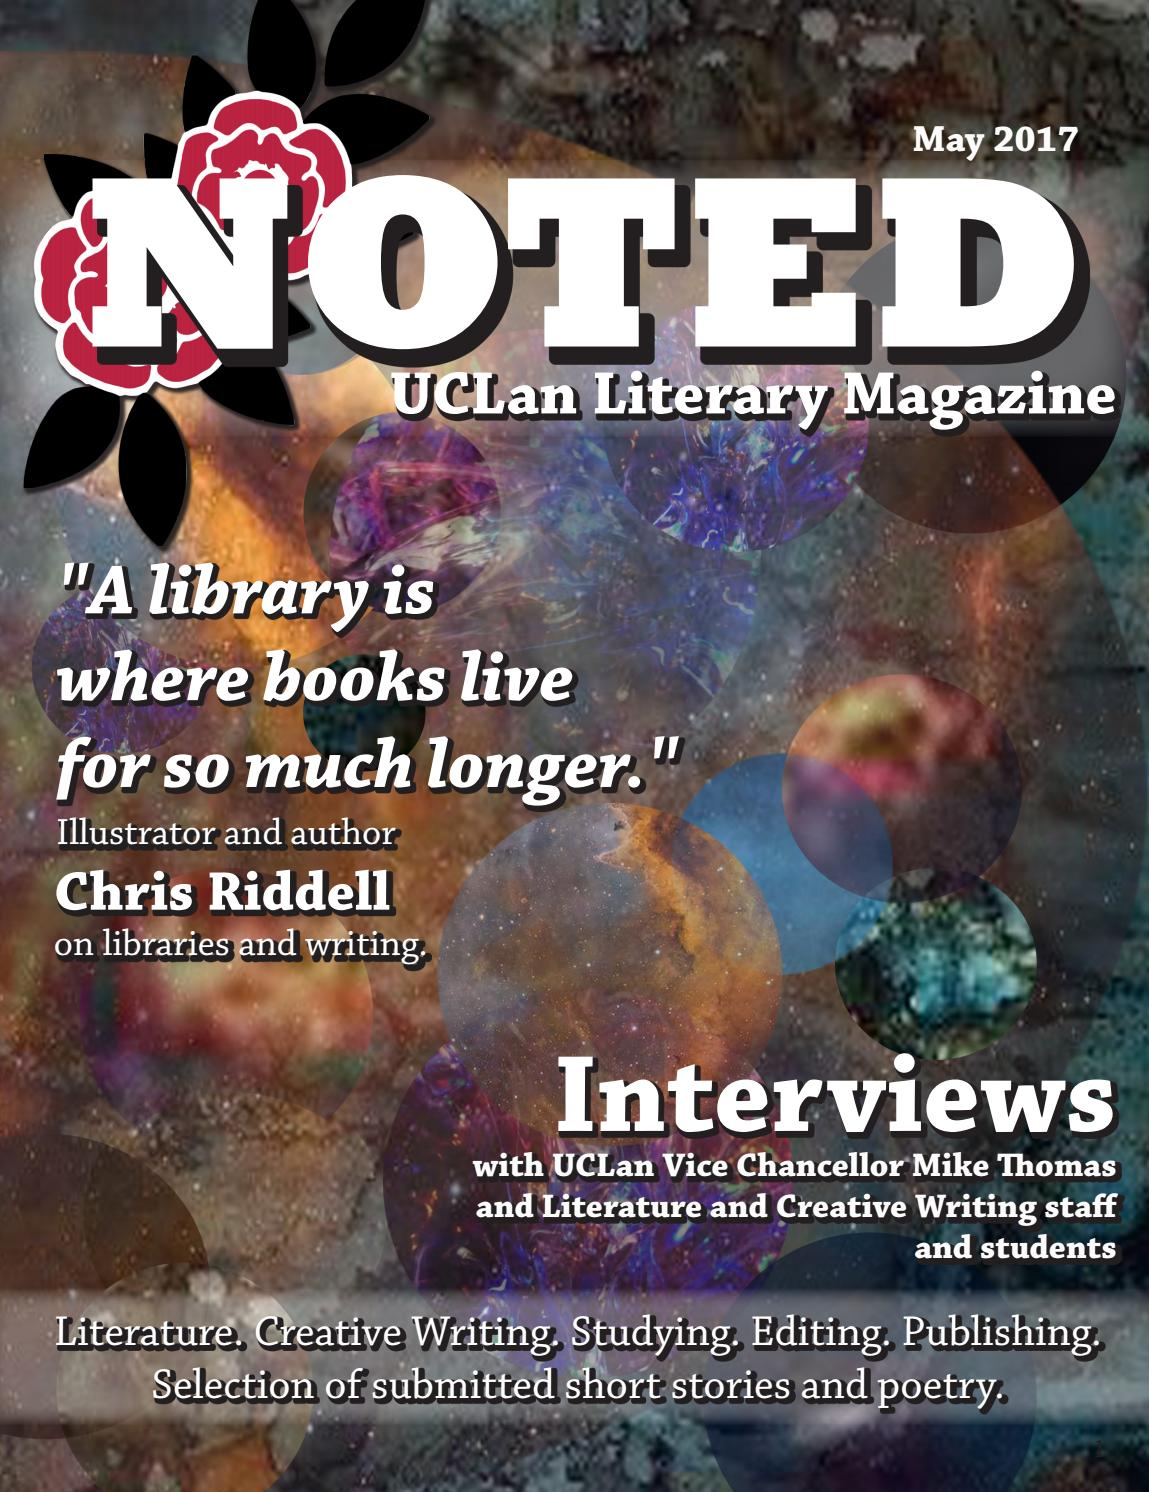 UCLan Noted Magazine May 2017 By